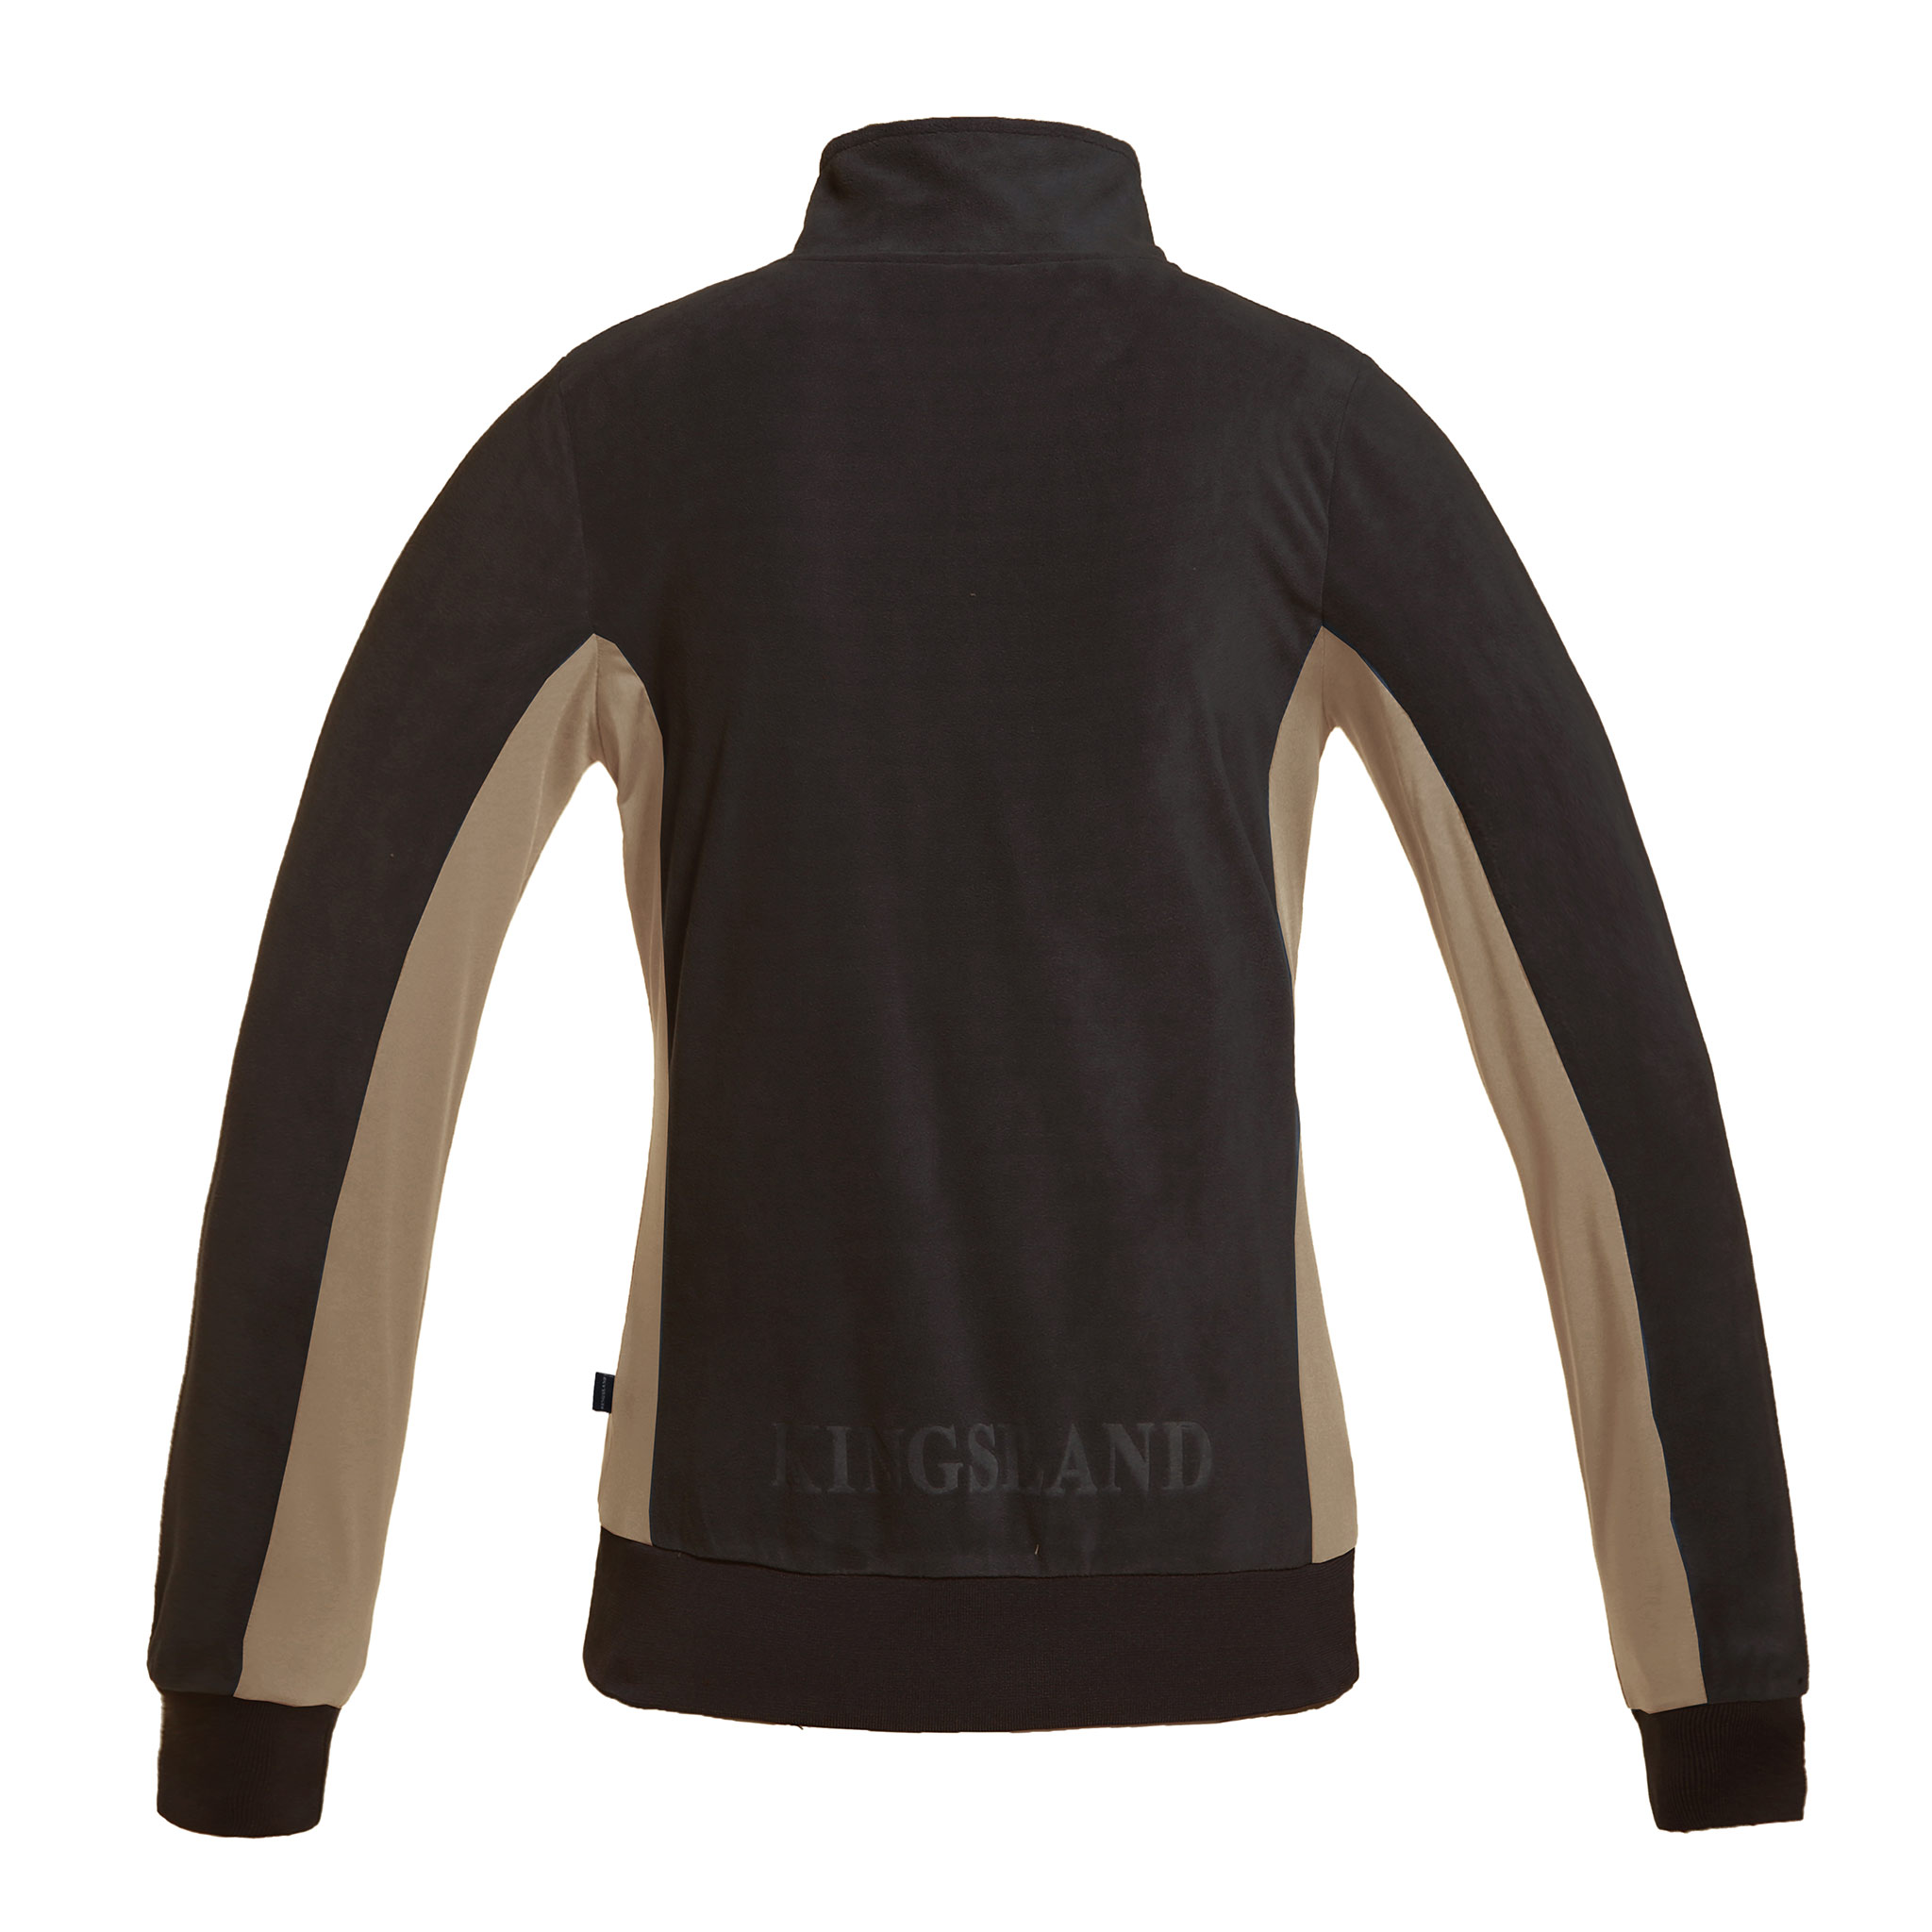 KINGSLAND ATHINA LADIES BROWN FLEECE JACKET